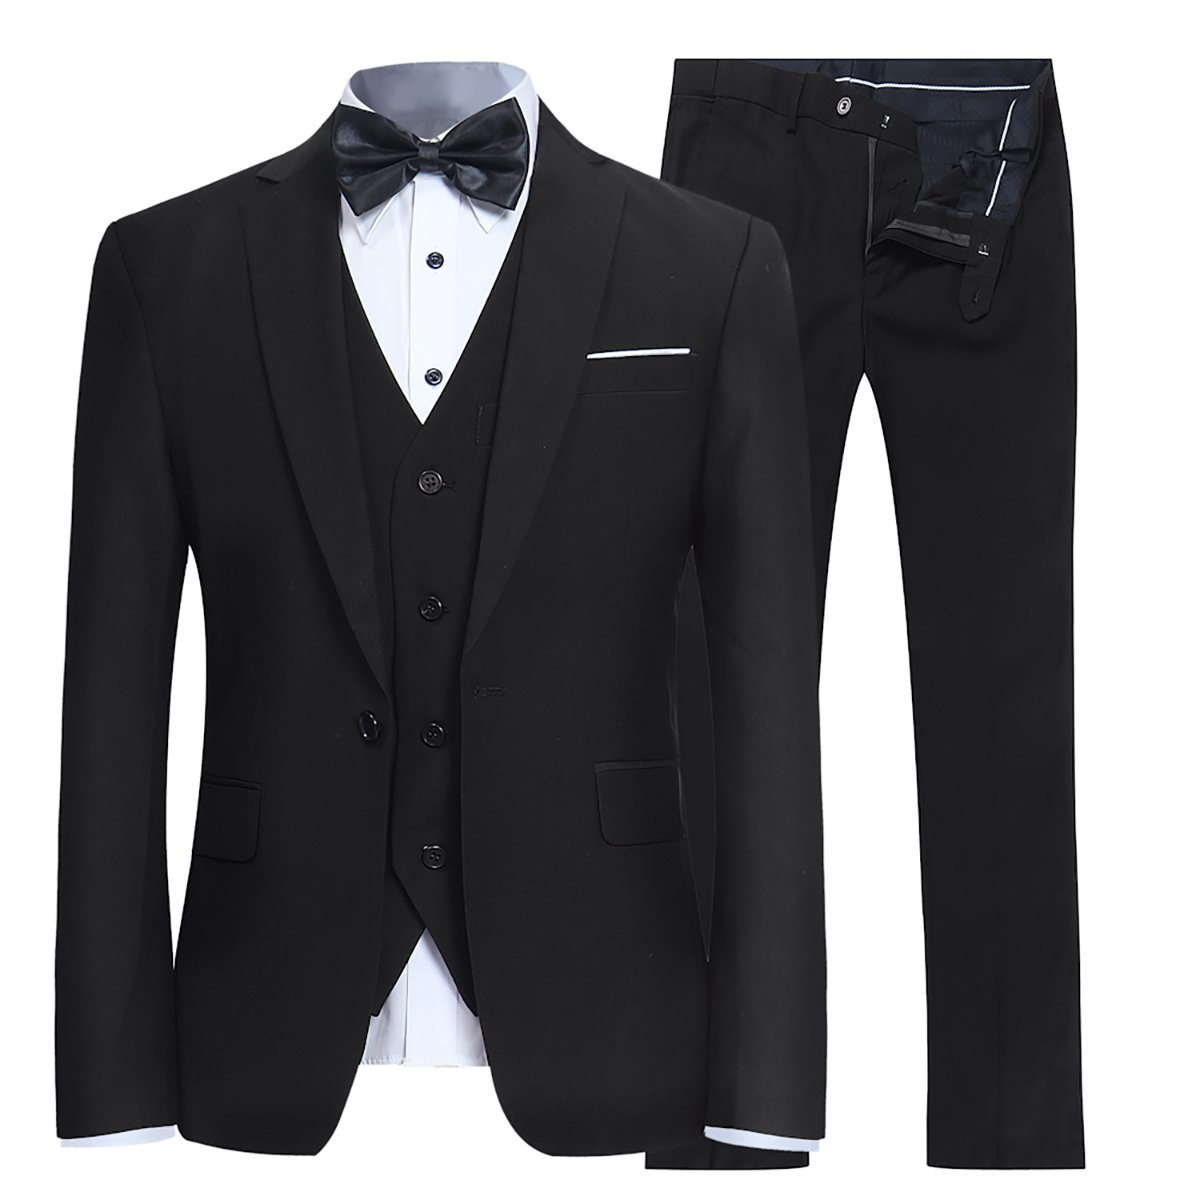 YFFUSHI Men's Slim Fit 3 Piece Suit One Button Blazer Tux Vest & Trousers, Black, Medium